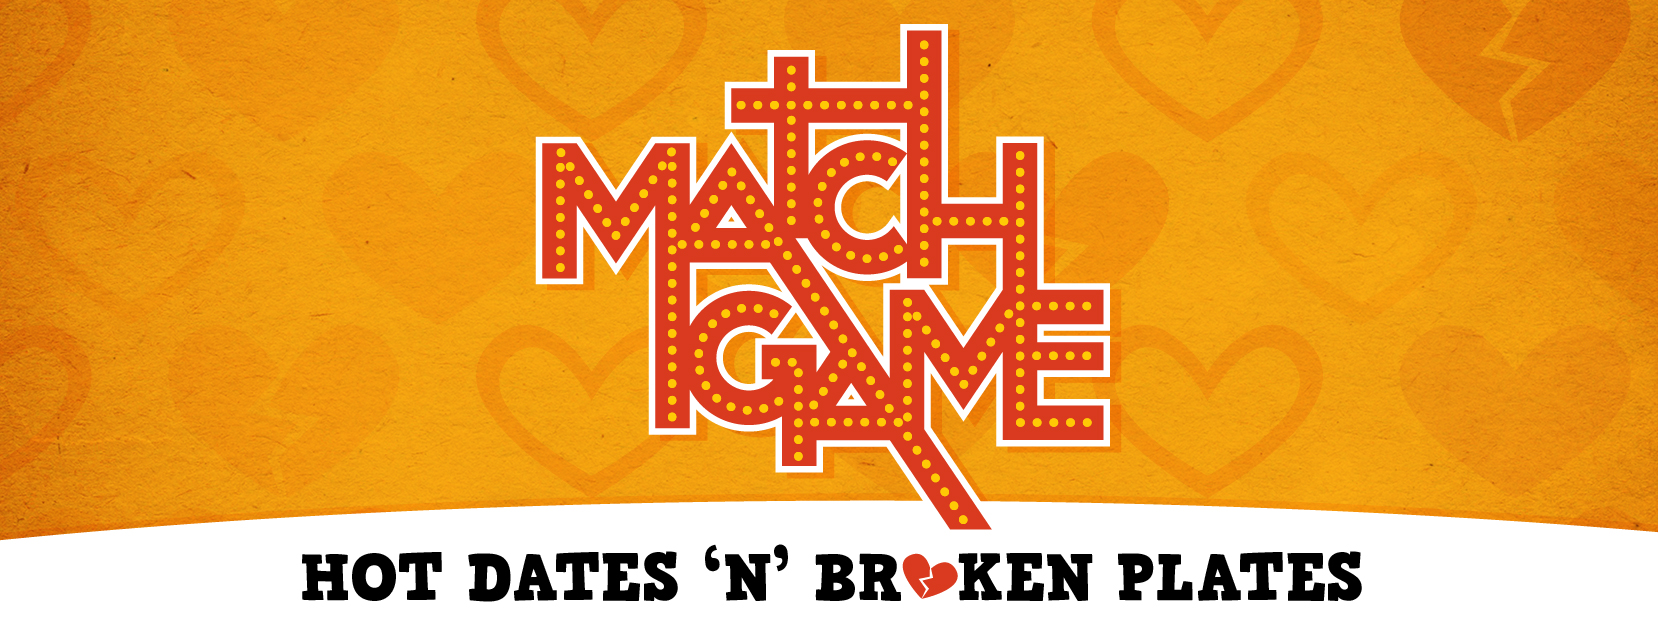 Match Game: Hot Dates 'N' Broken Plates